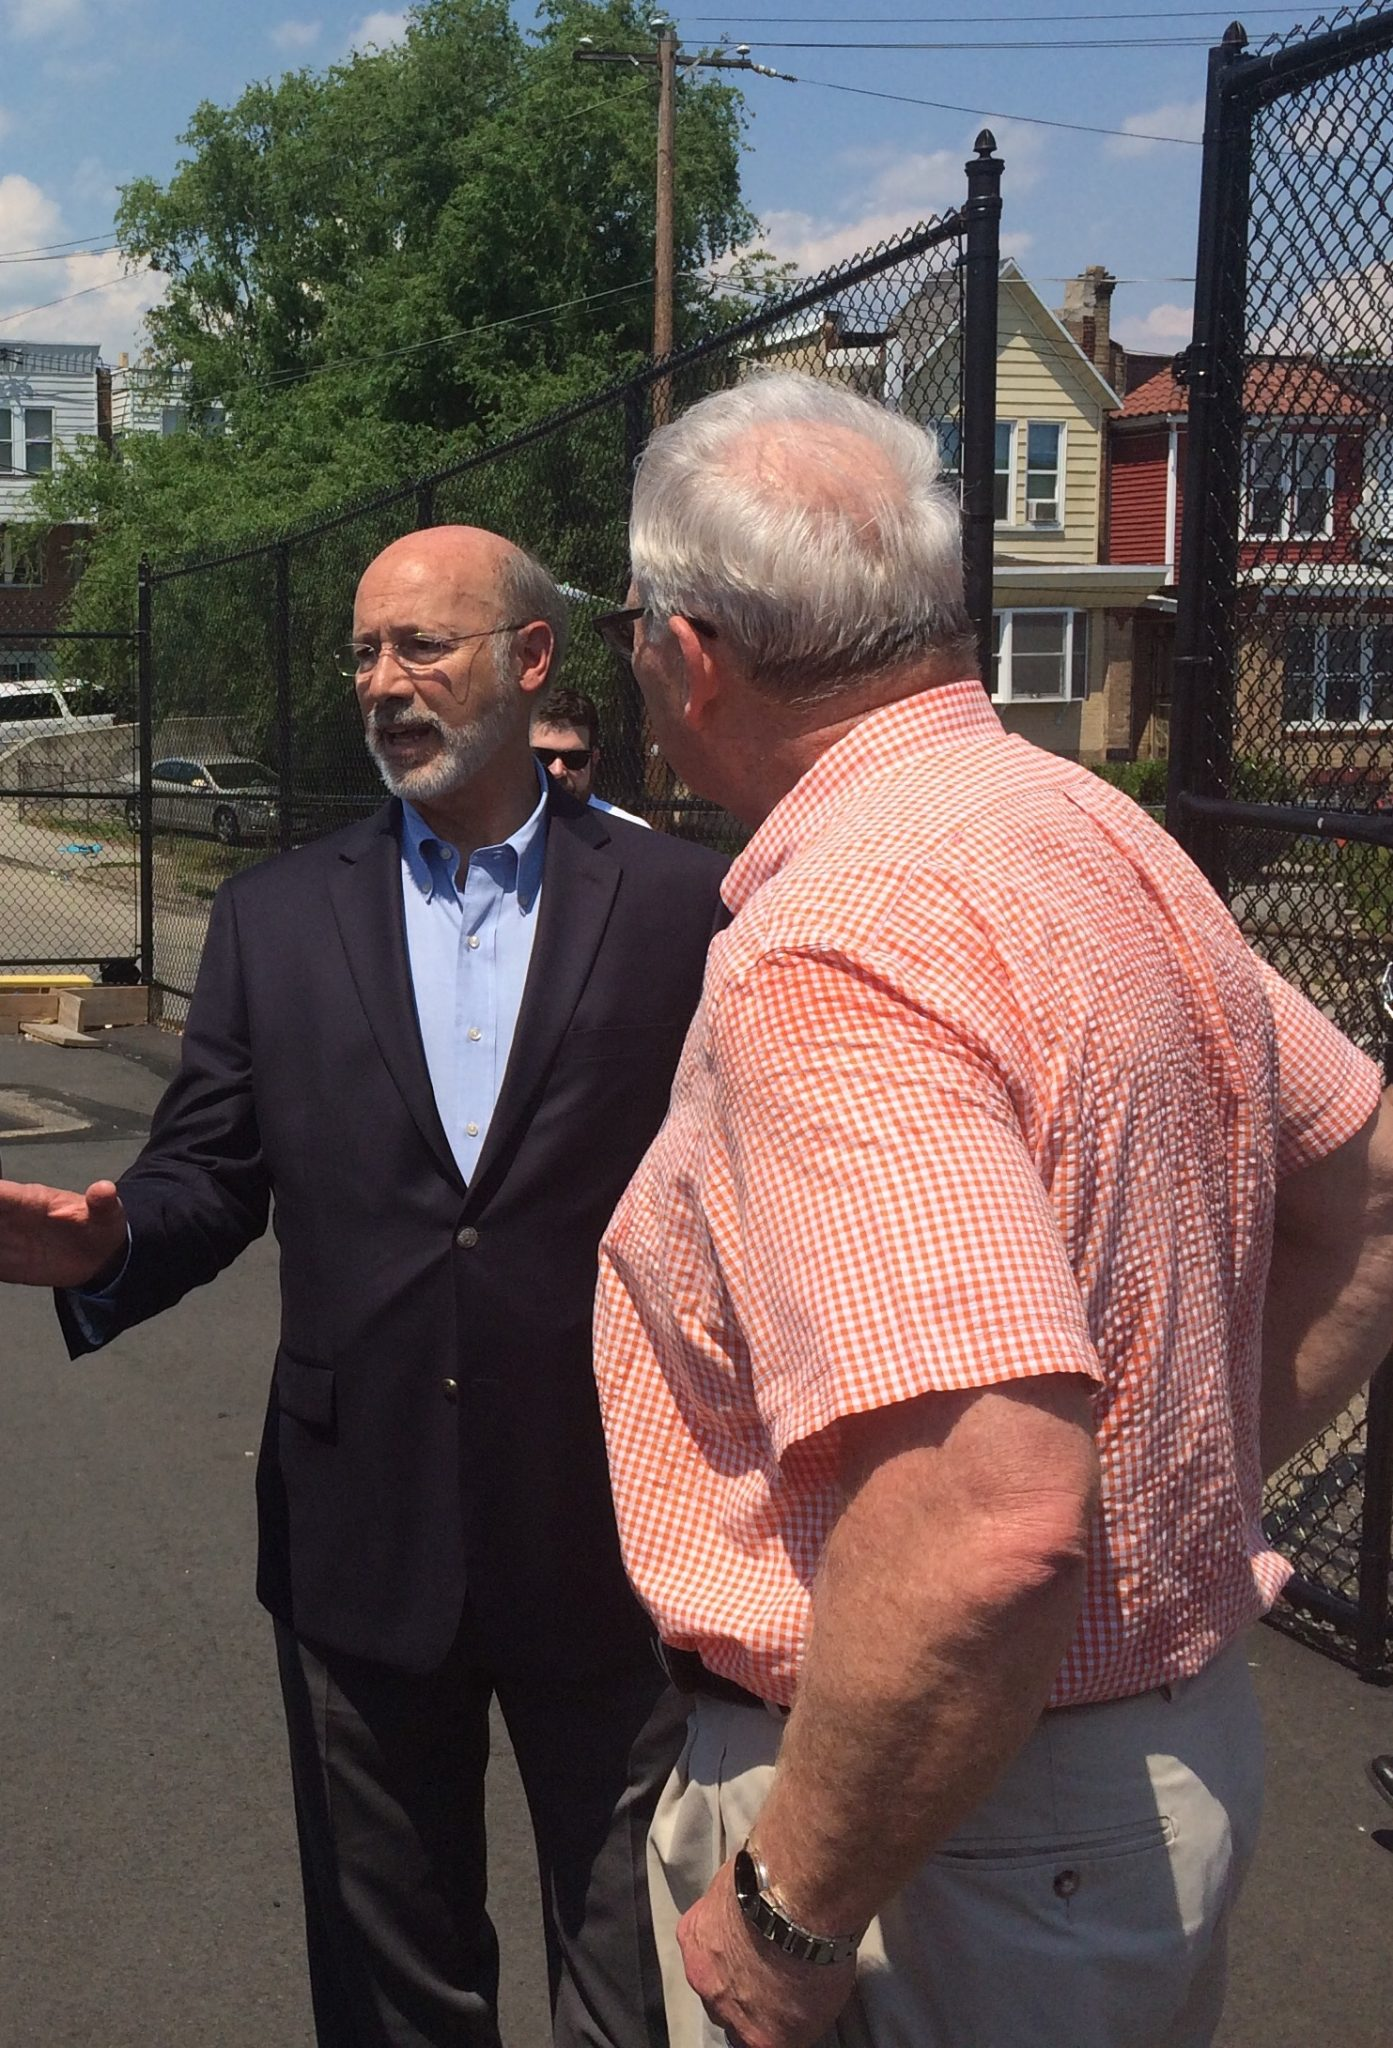 Photo Update – Governor Tom Wolf Visit